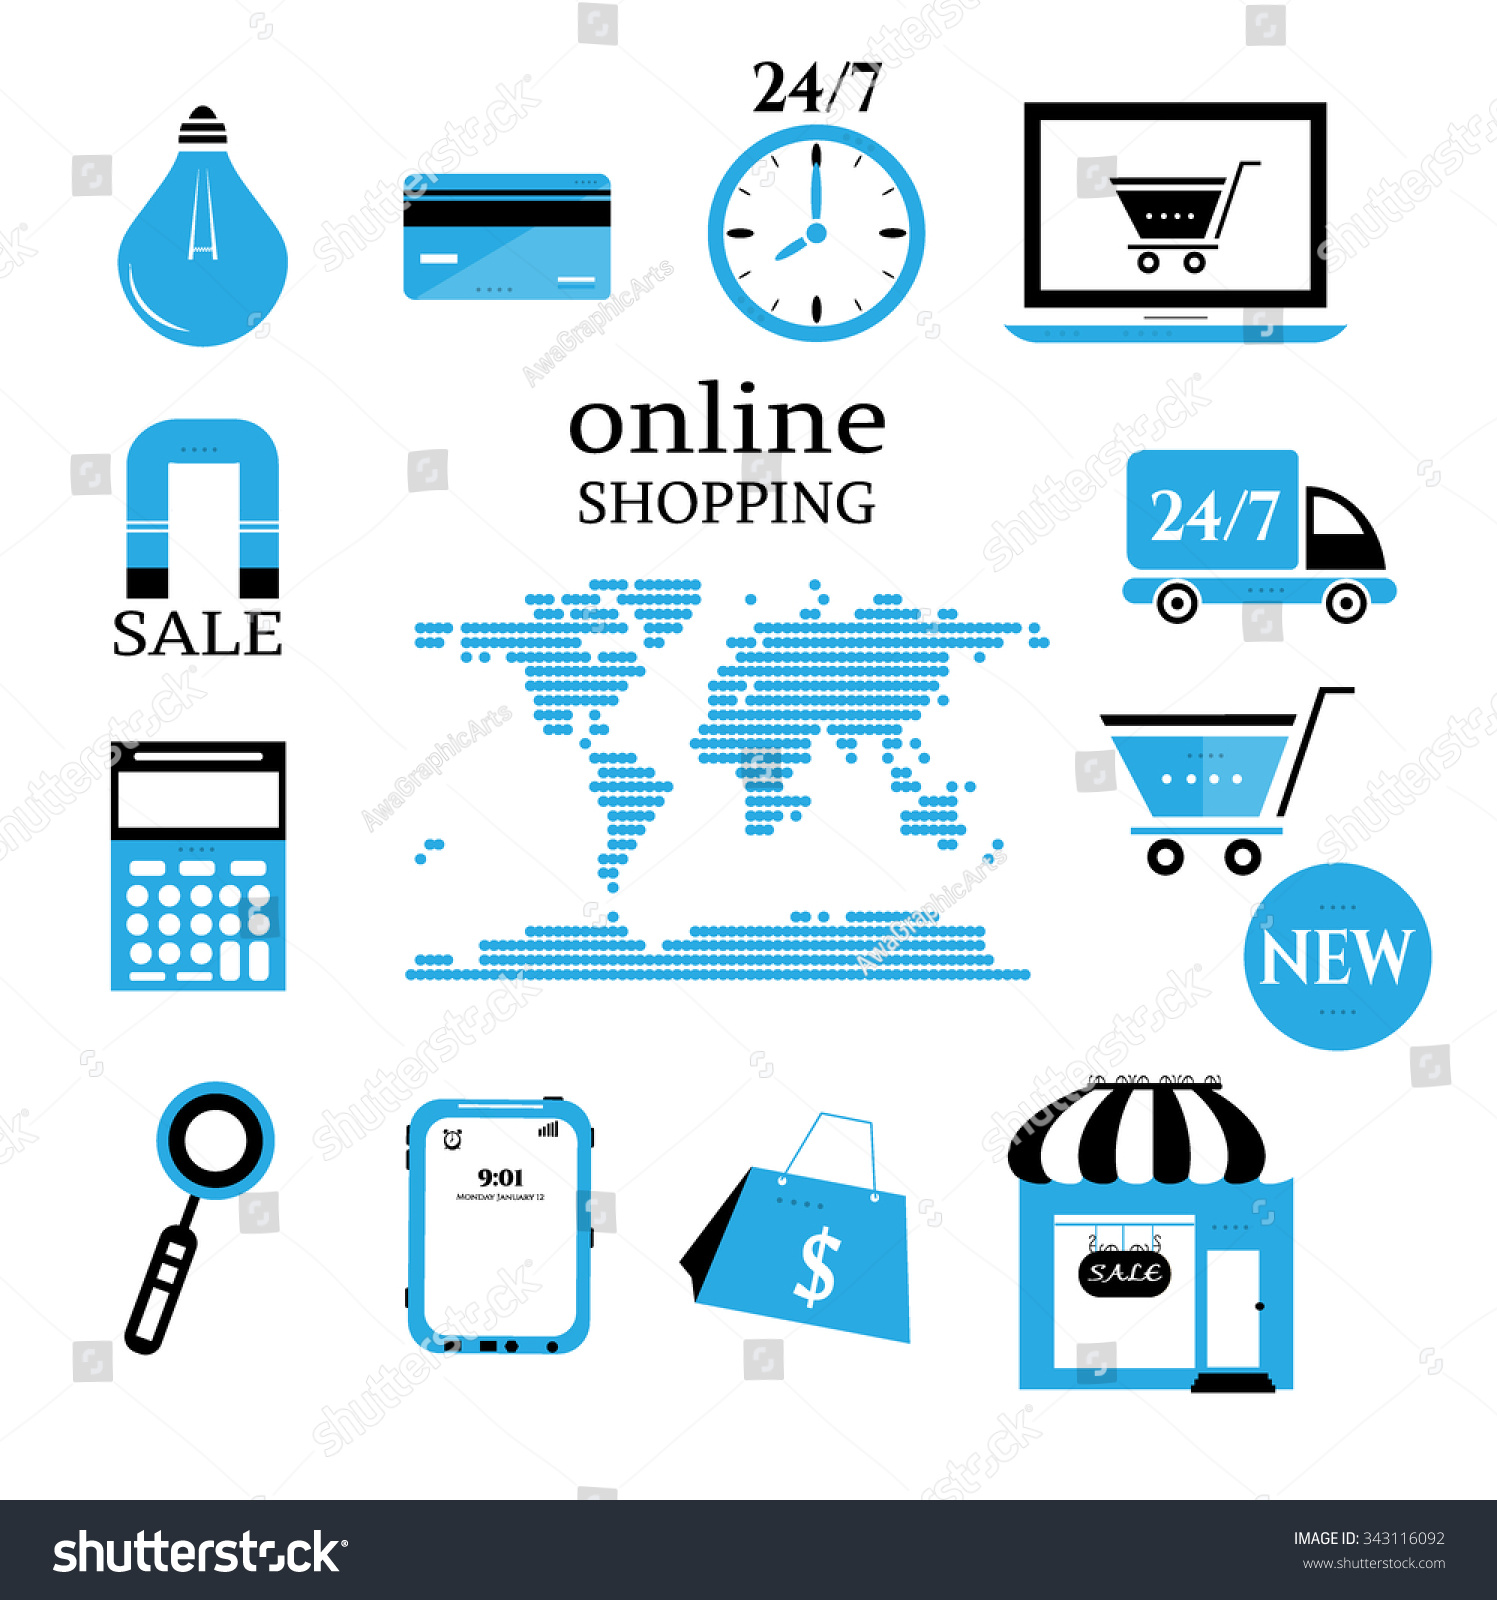 Business background online shopping world map vector de business background online shopping world map vector de stock343116092 shutterstock gumiabroncs Gallery